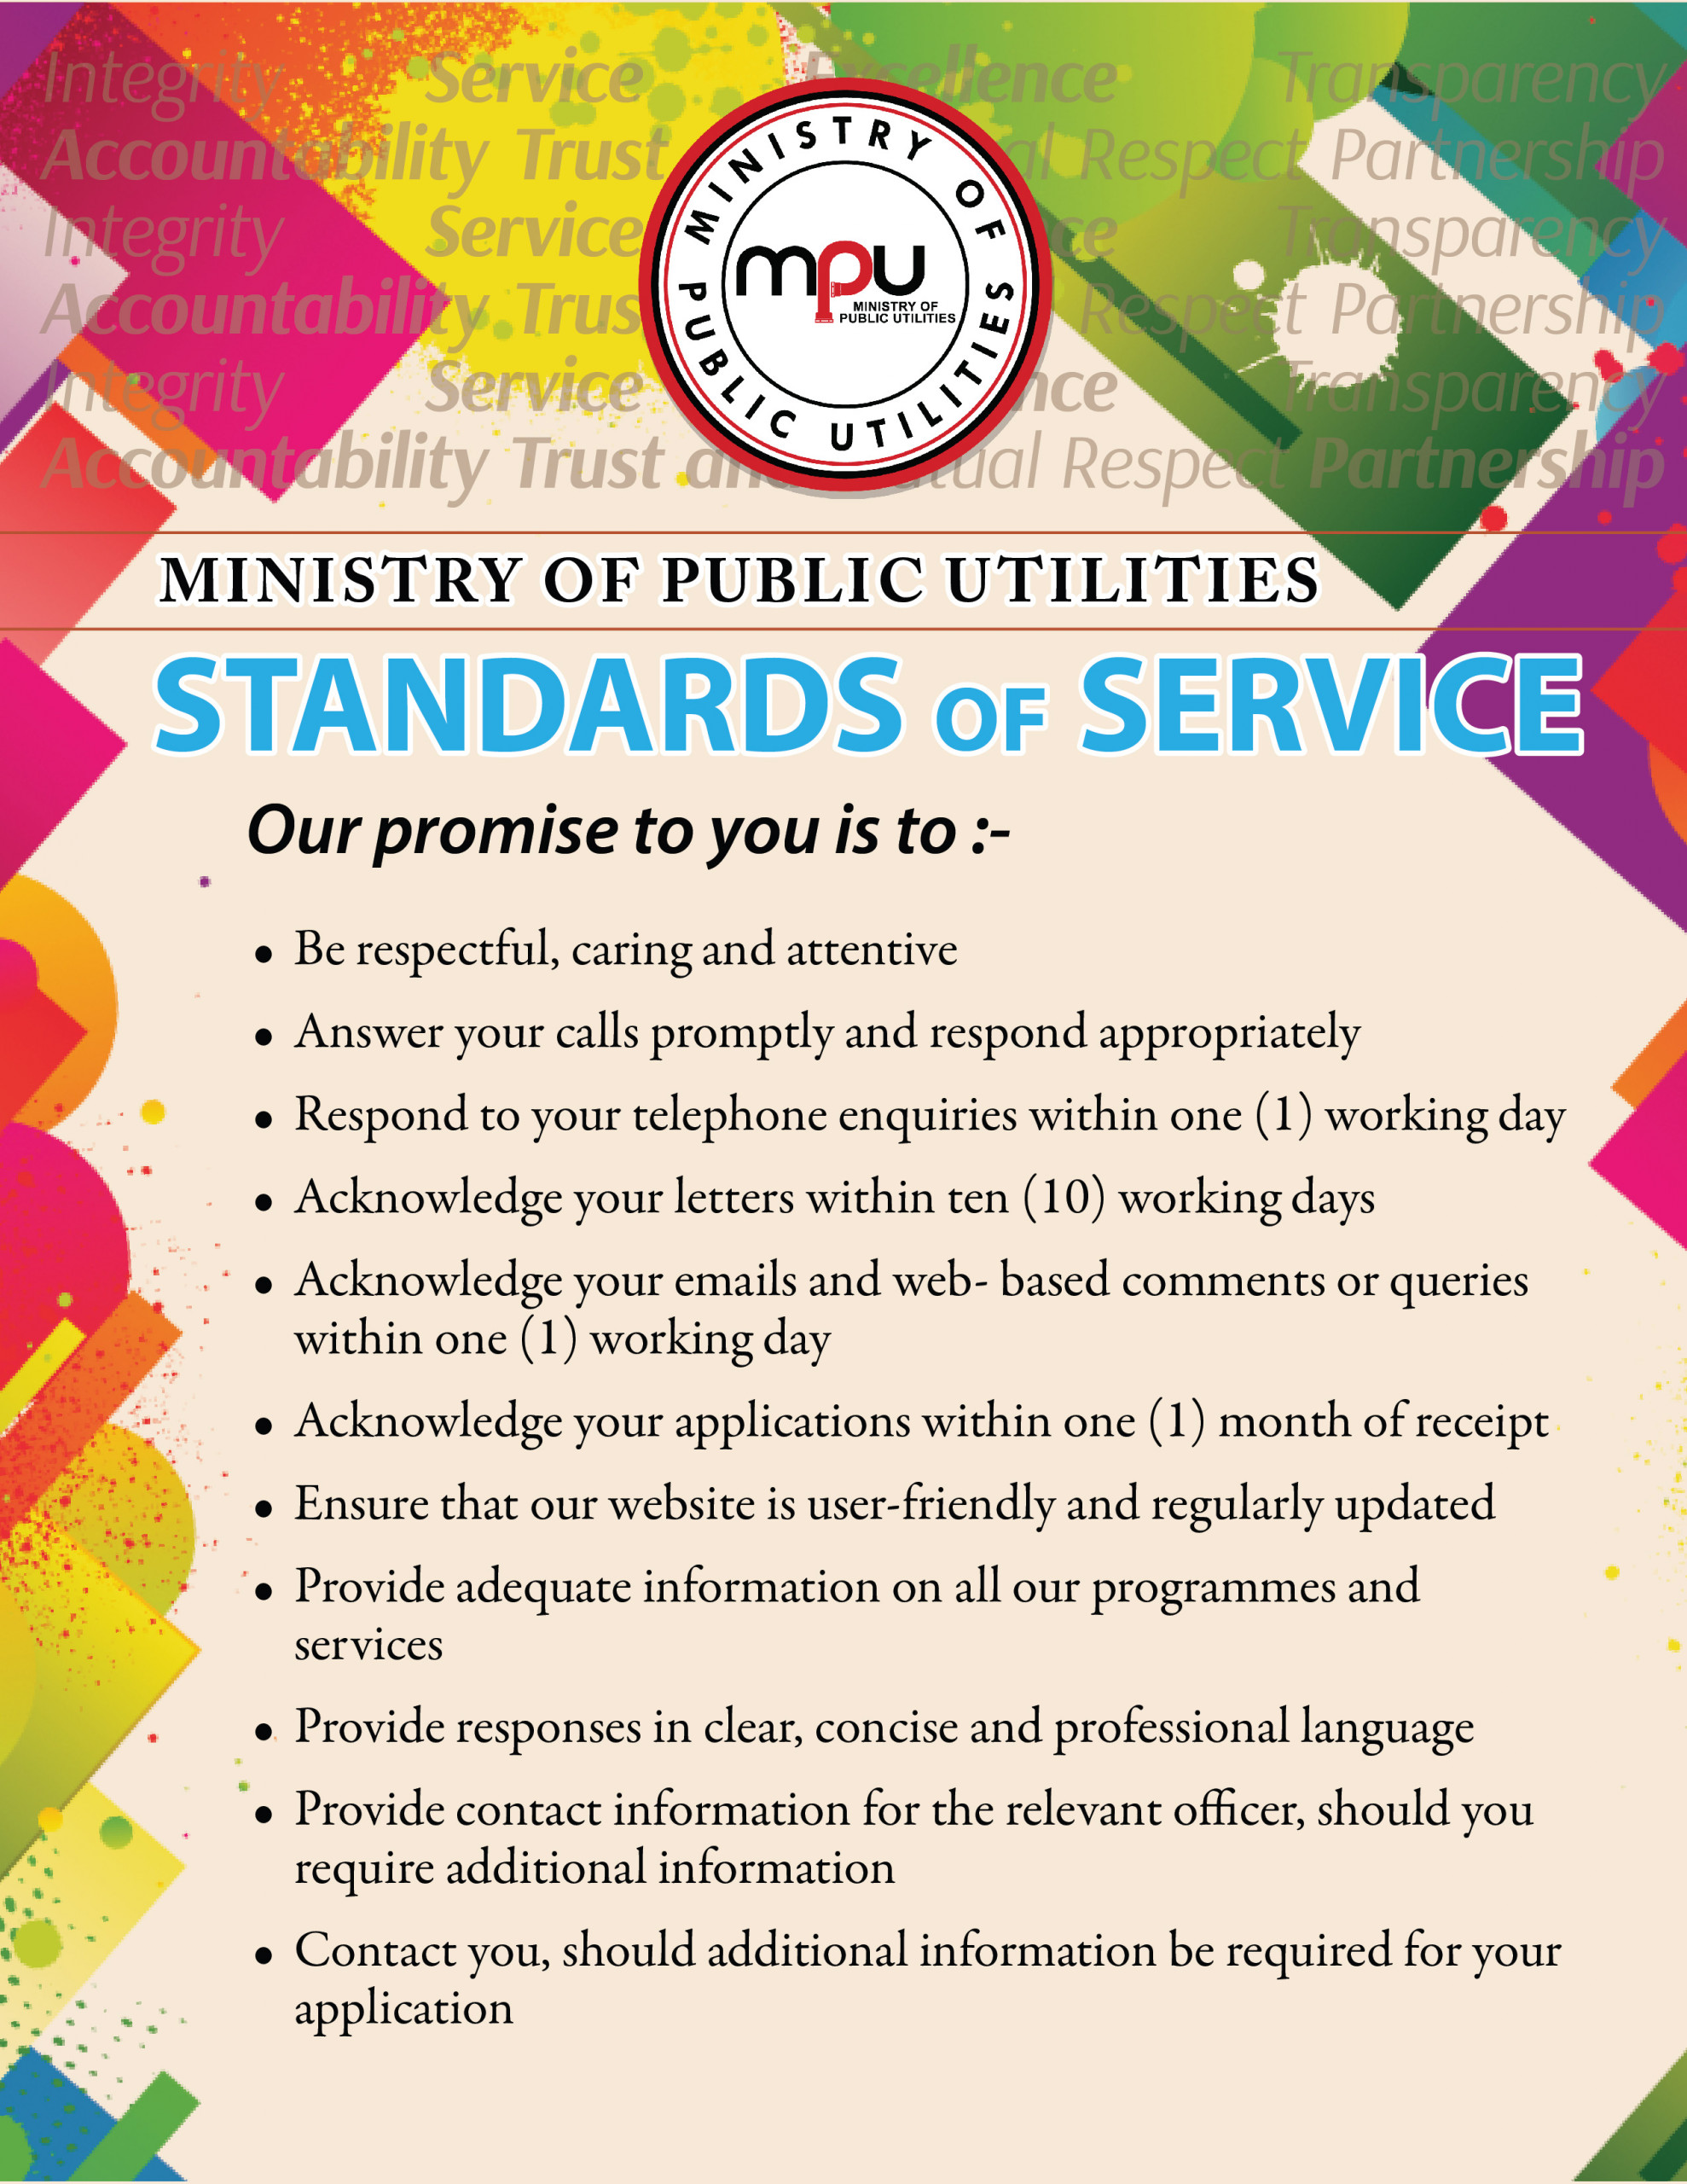 The Ministry of Public Utilities' Standards of Service: to be respectful, caring and attentive; answer calls promptly and respond appropriately, respond to phone calls, emails, web-based comments and queries within one working day and letters within ten working days, acknowledge applications within one month of receipt, ensure that our website is user friendly and regularly updated, provide adequate information on all our programmes and services, provide responses in a clear, concise and professional language, provide contact information for the relevant officer, should you require further information; contact you should additional information be required.